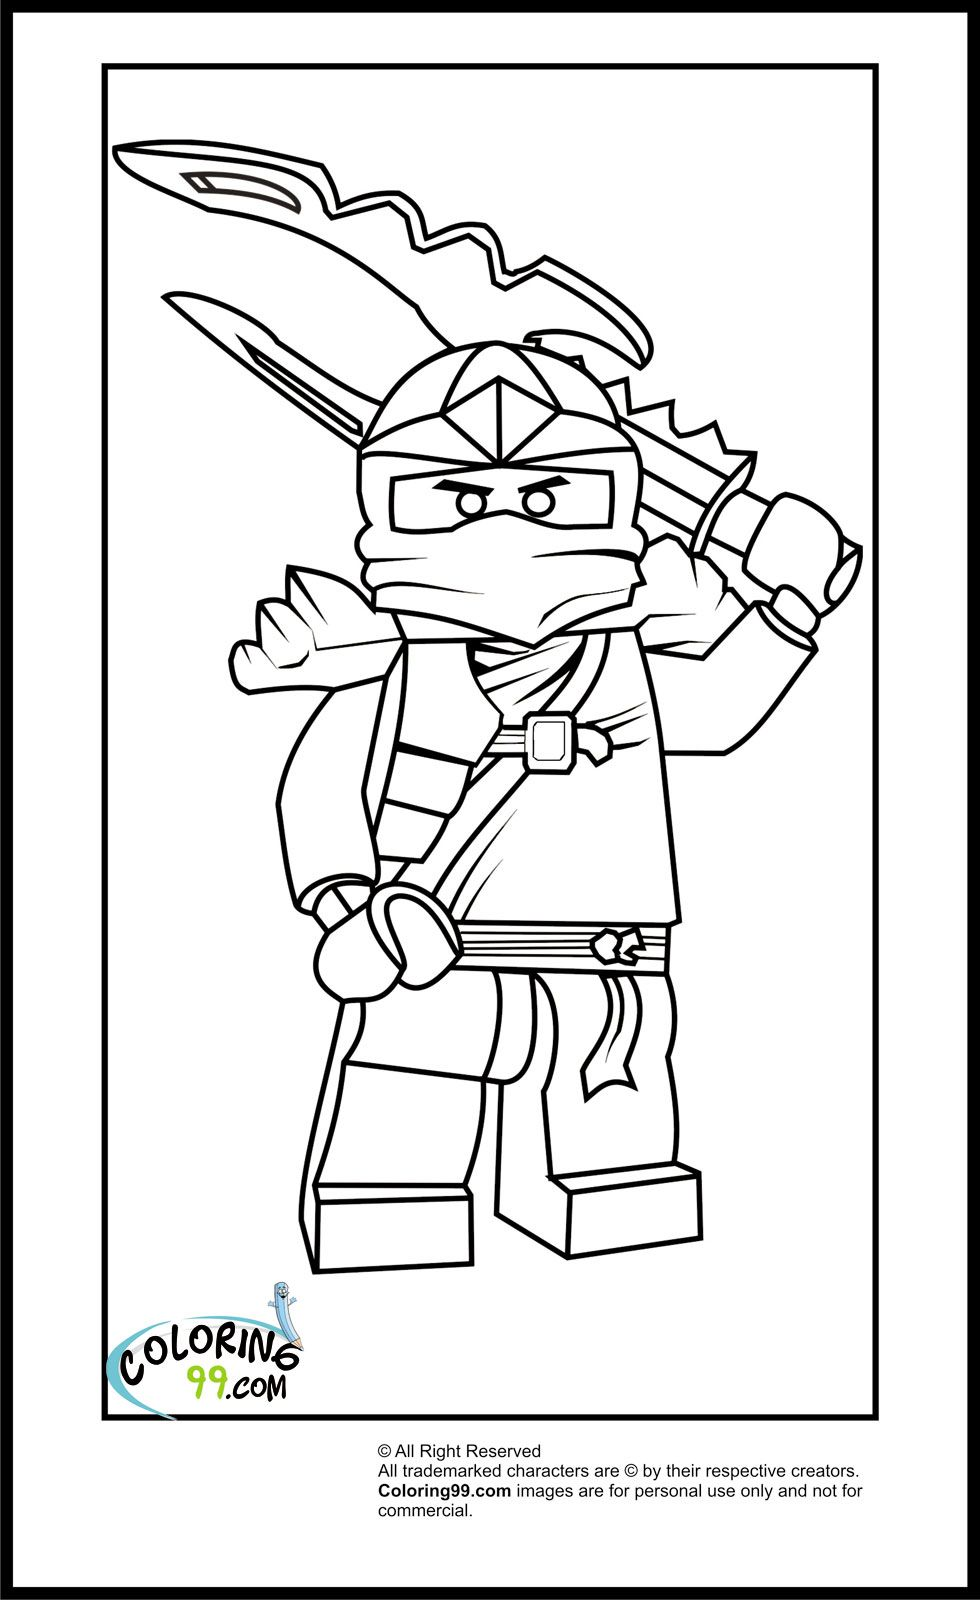 Lego Ninjago Coloring Pages Free